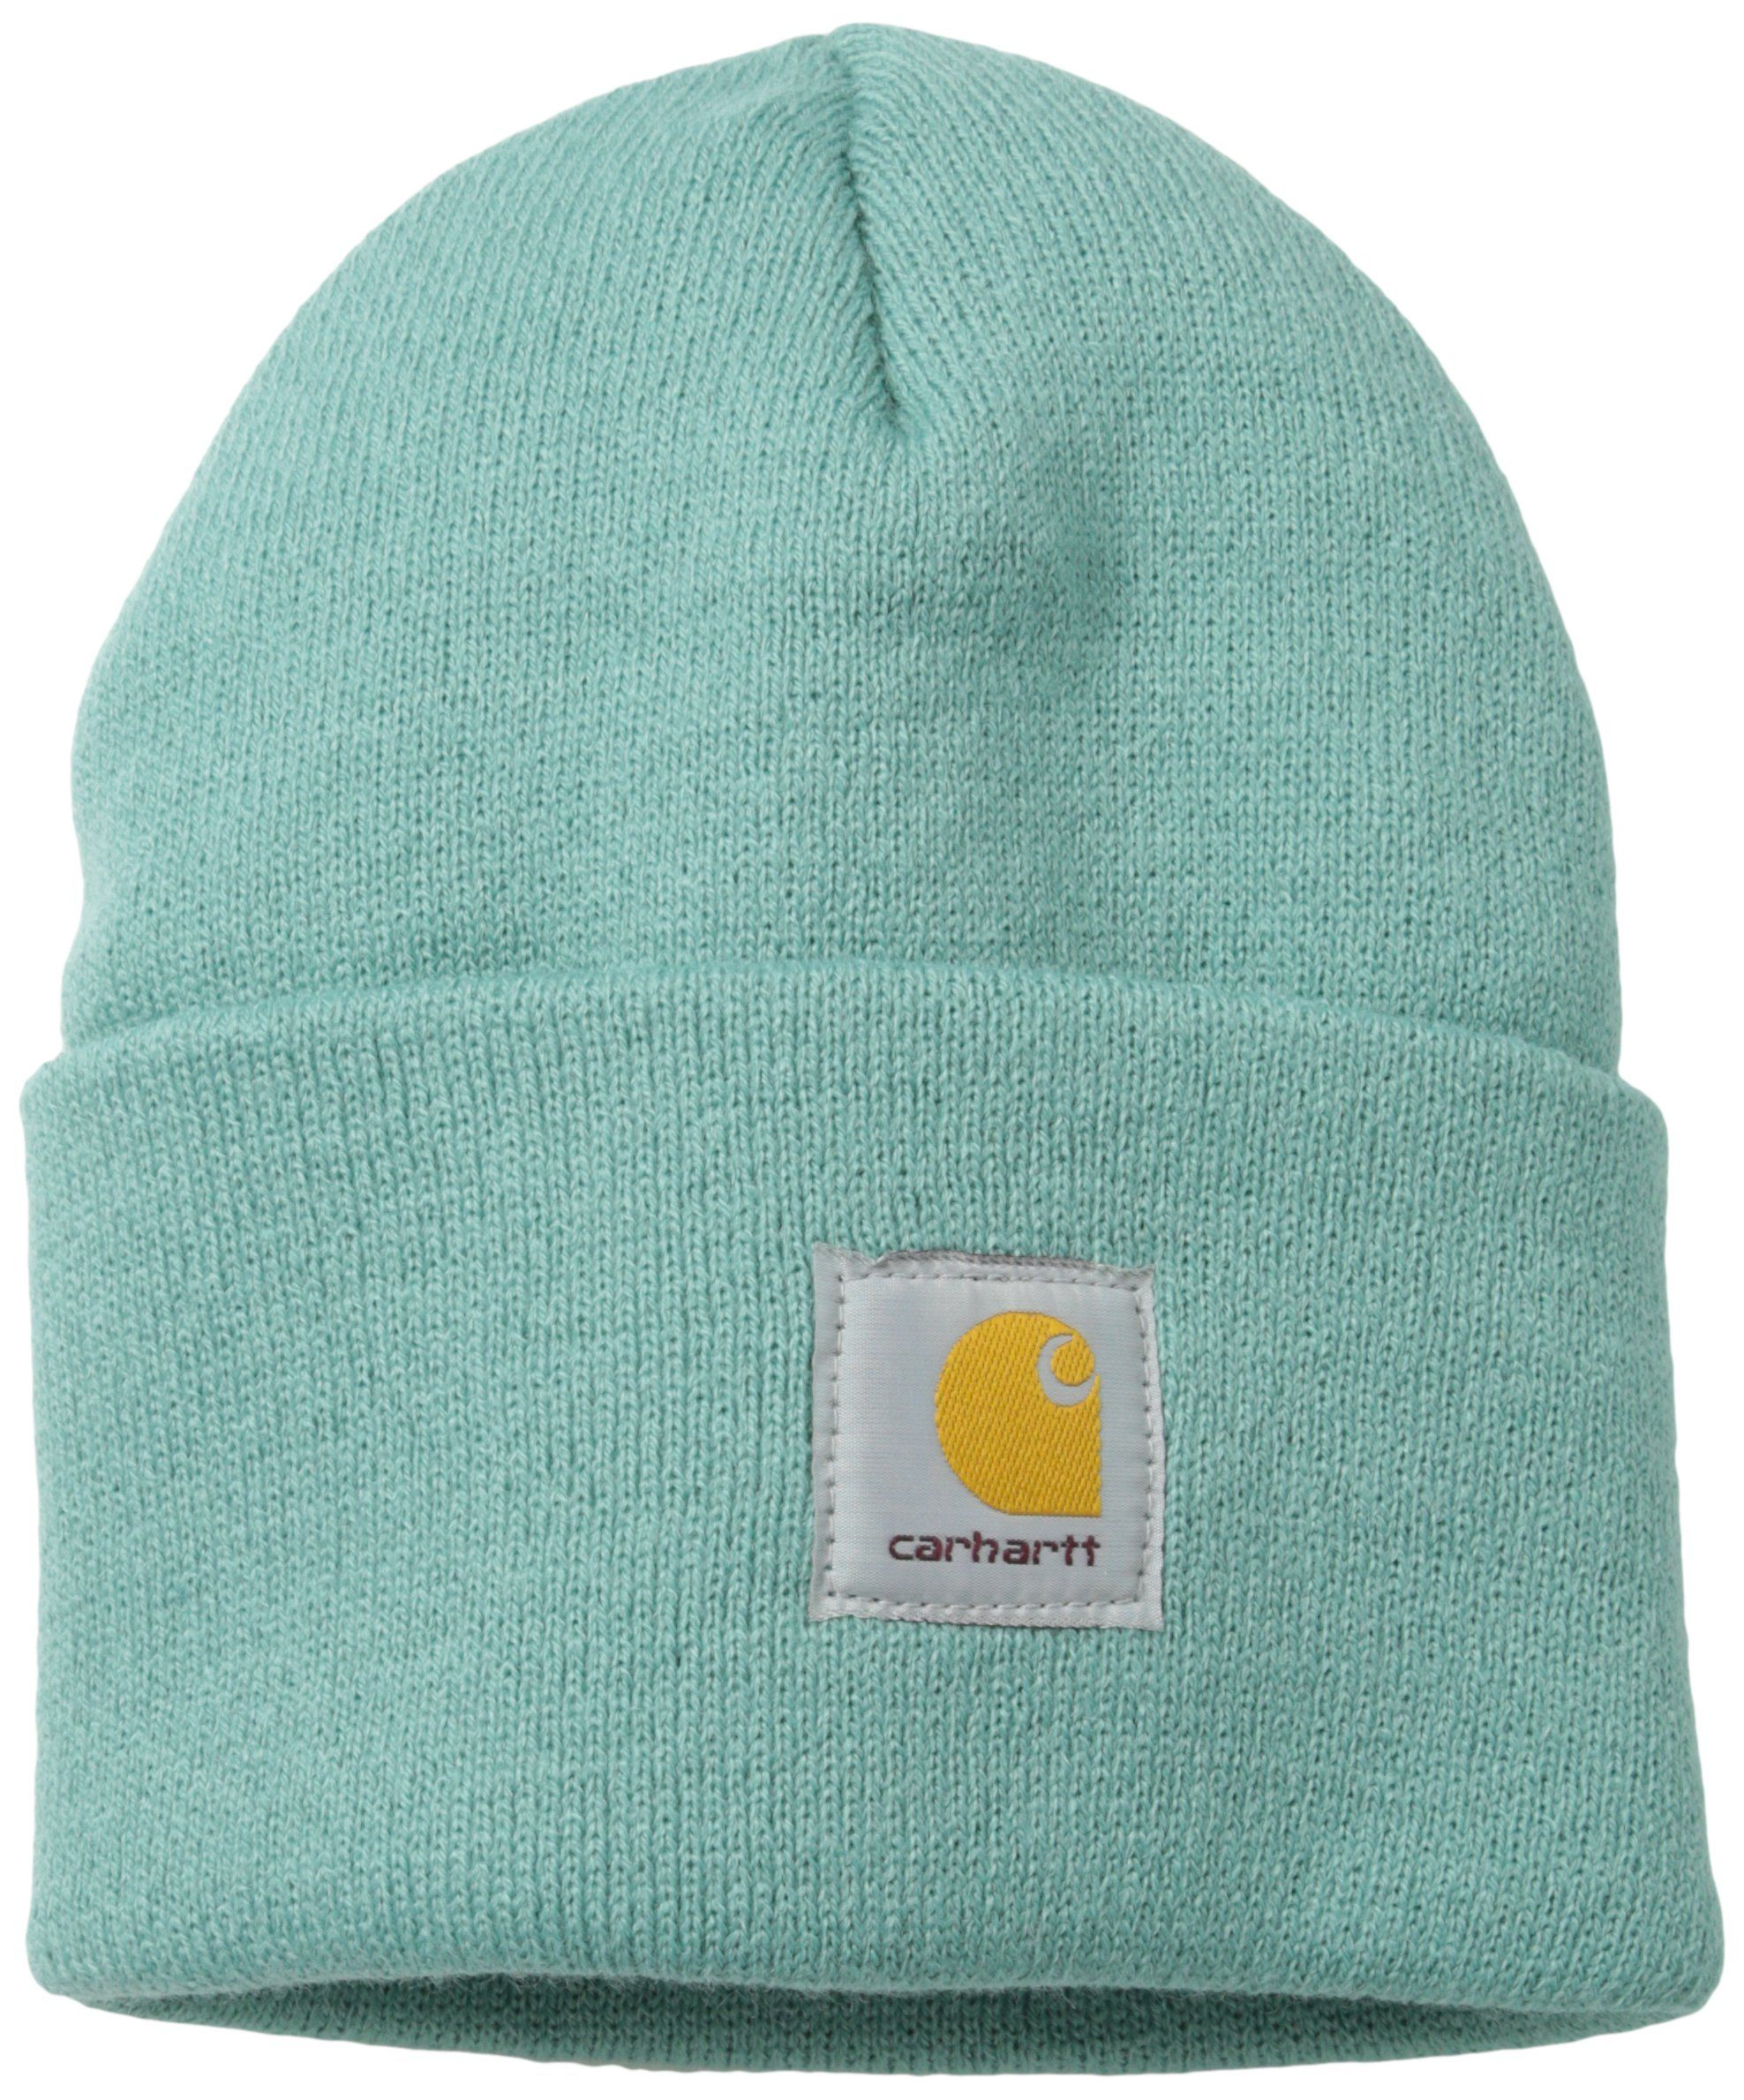 b3f3ddf6321749 Amazon.com: Carhartt Women's Knit Beanie Hat, Coastline, One Size: Clothing  $7.99